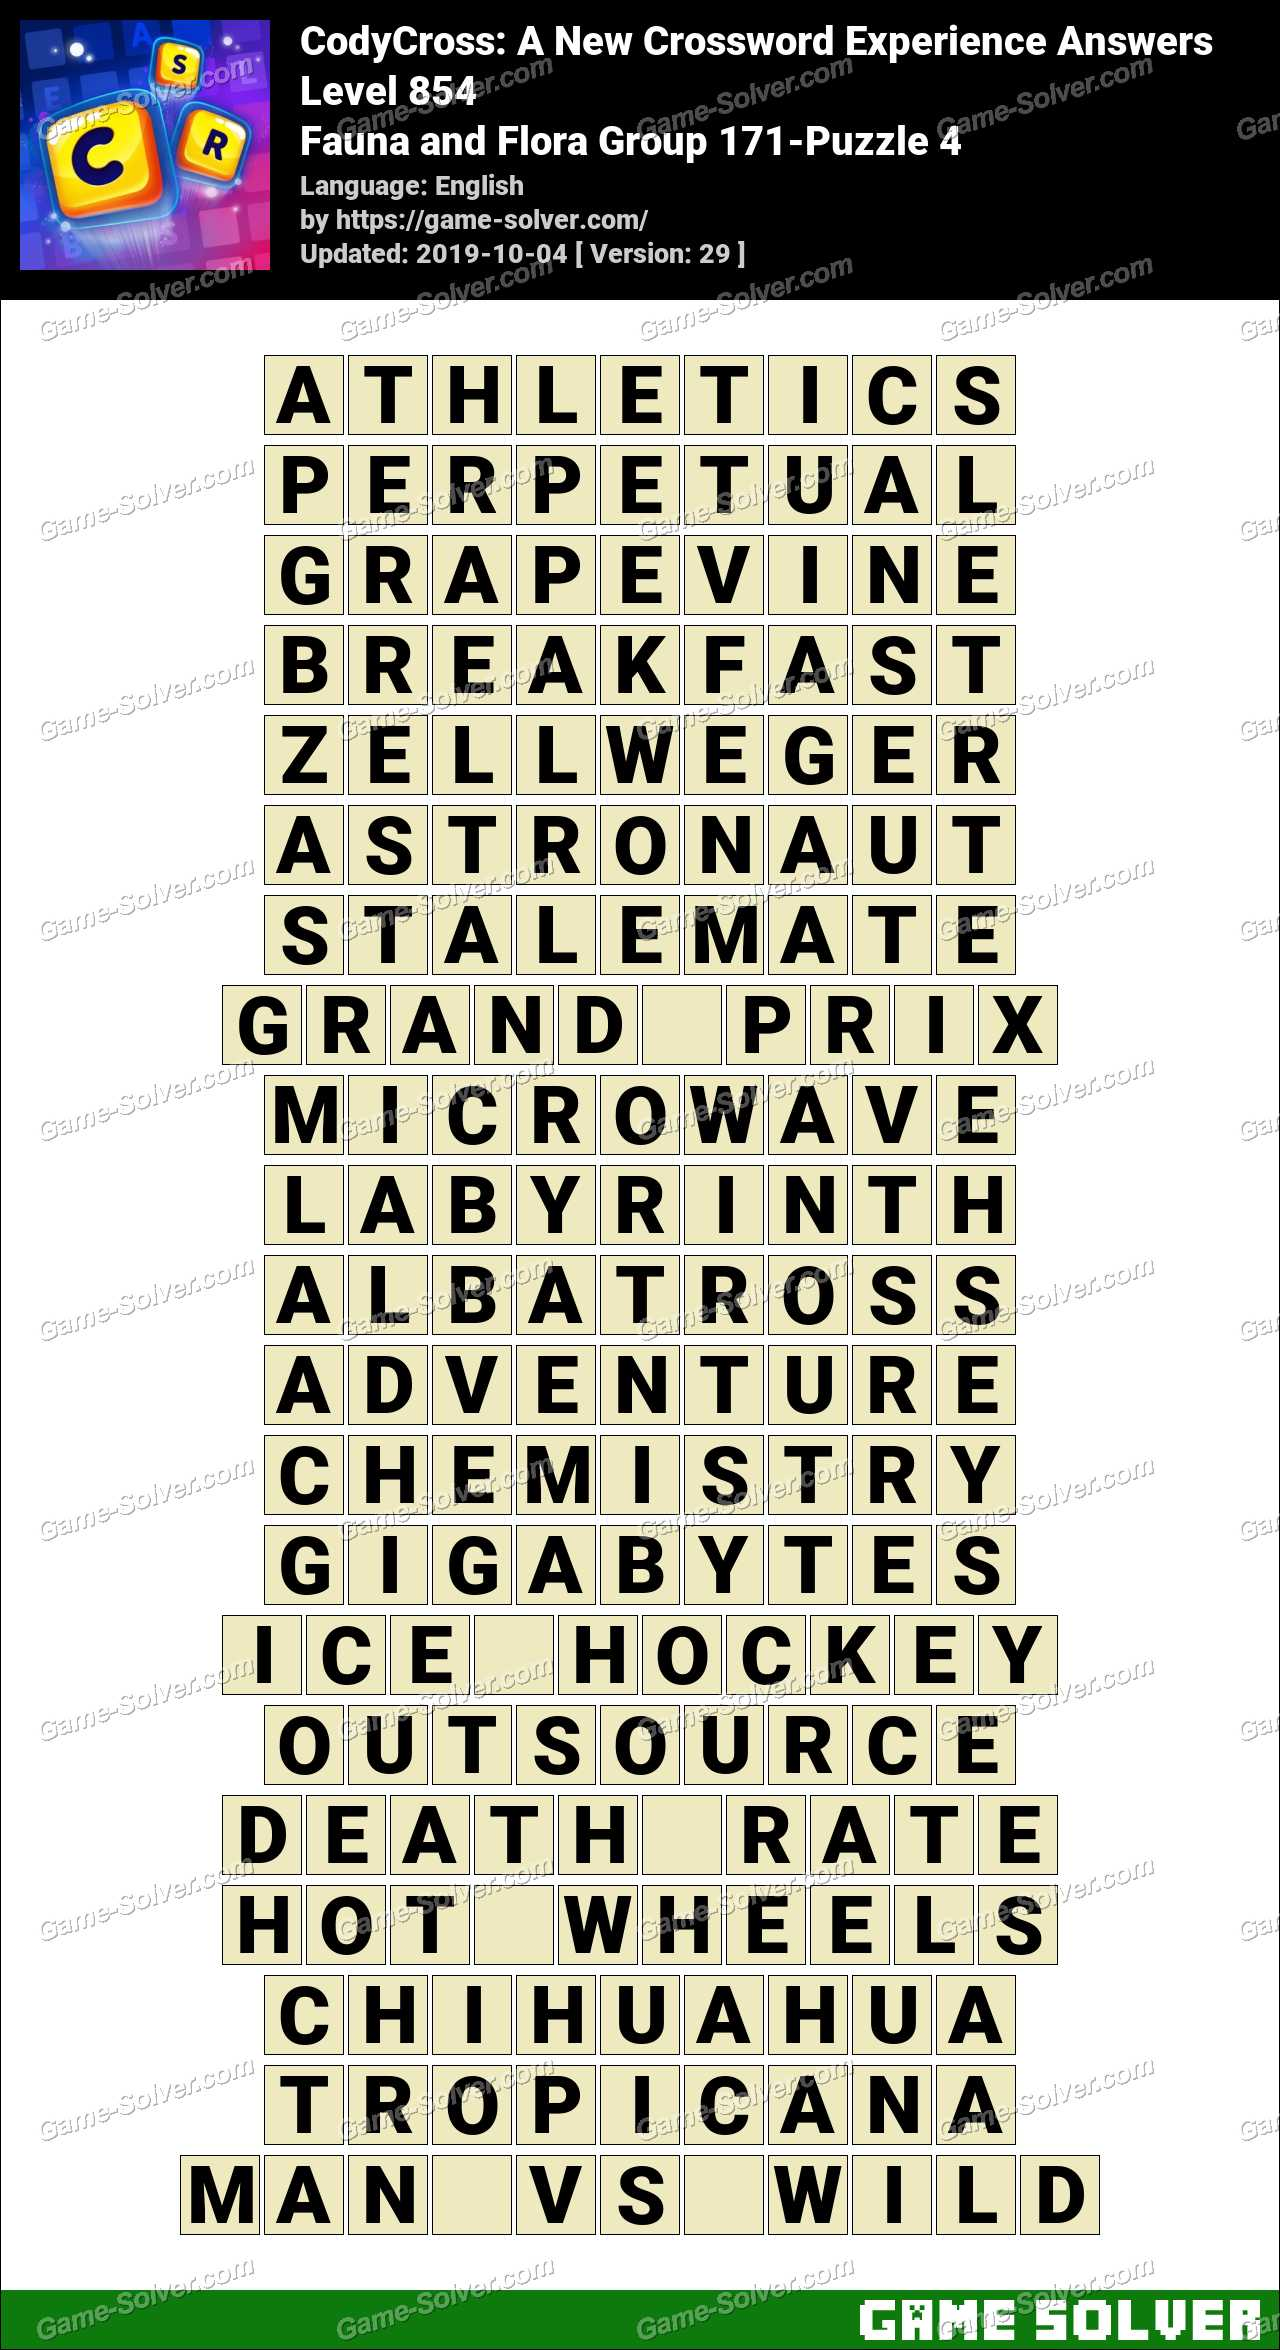 CodyCross Fauna and Flora Group 171-Puzzle 4 Answers